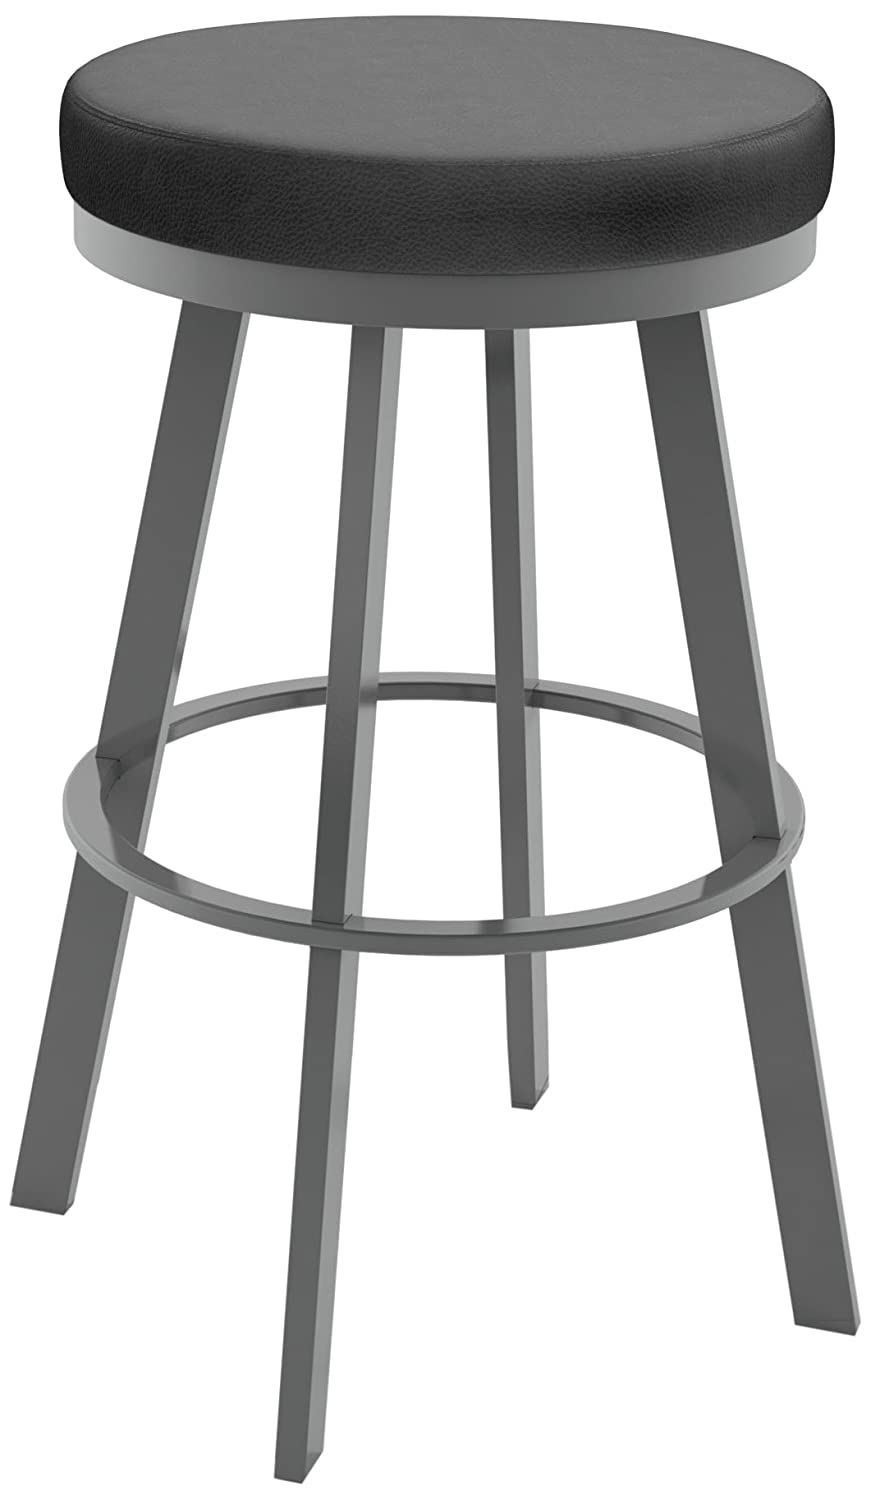 26 inch bar stools Amazon.com: Amisco Swice Swivel Metal Counter Stool, 26 Inch  26 inch bar stools